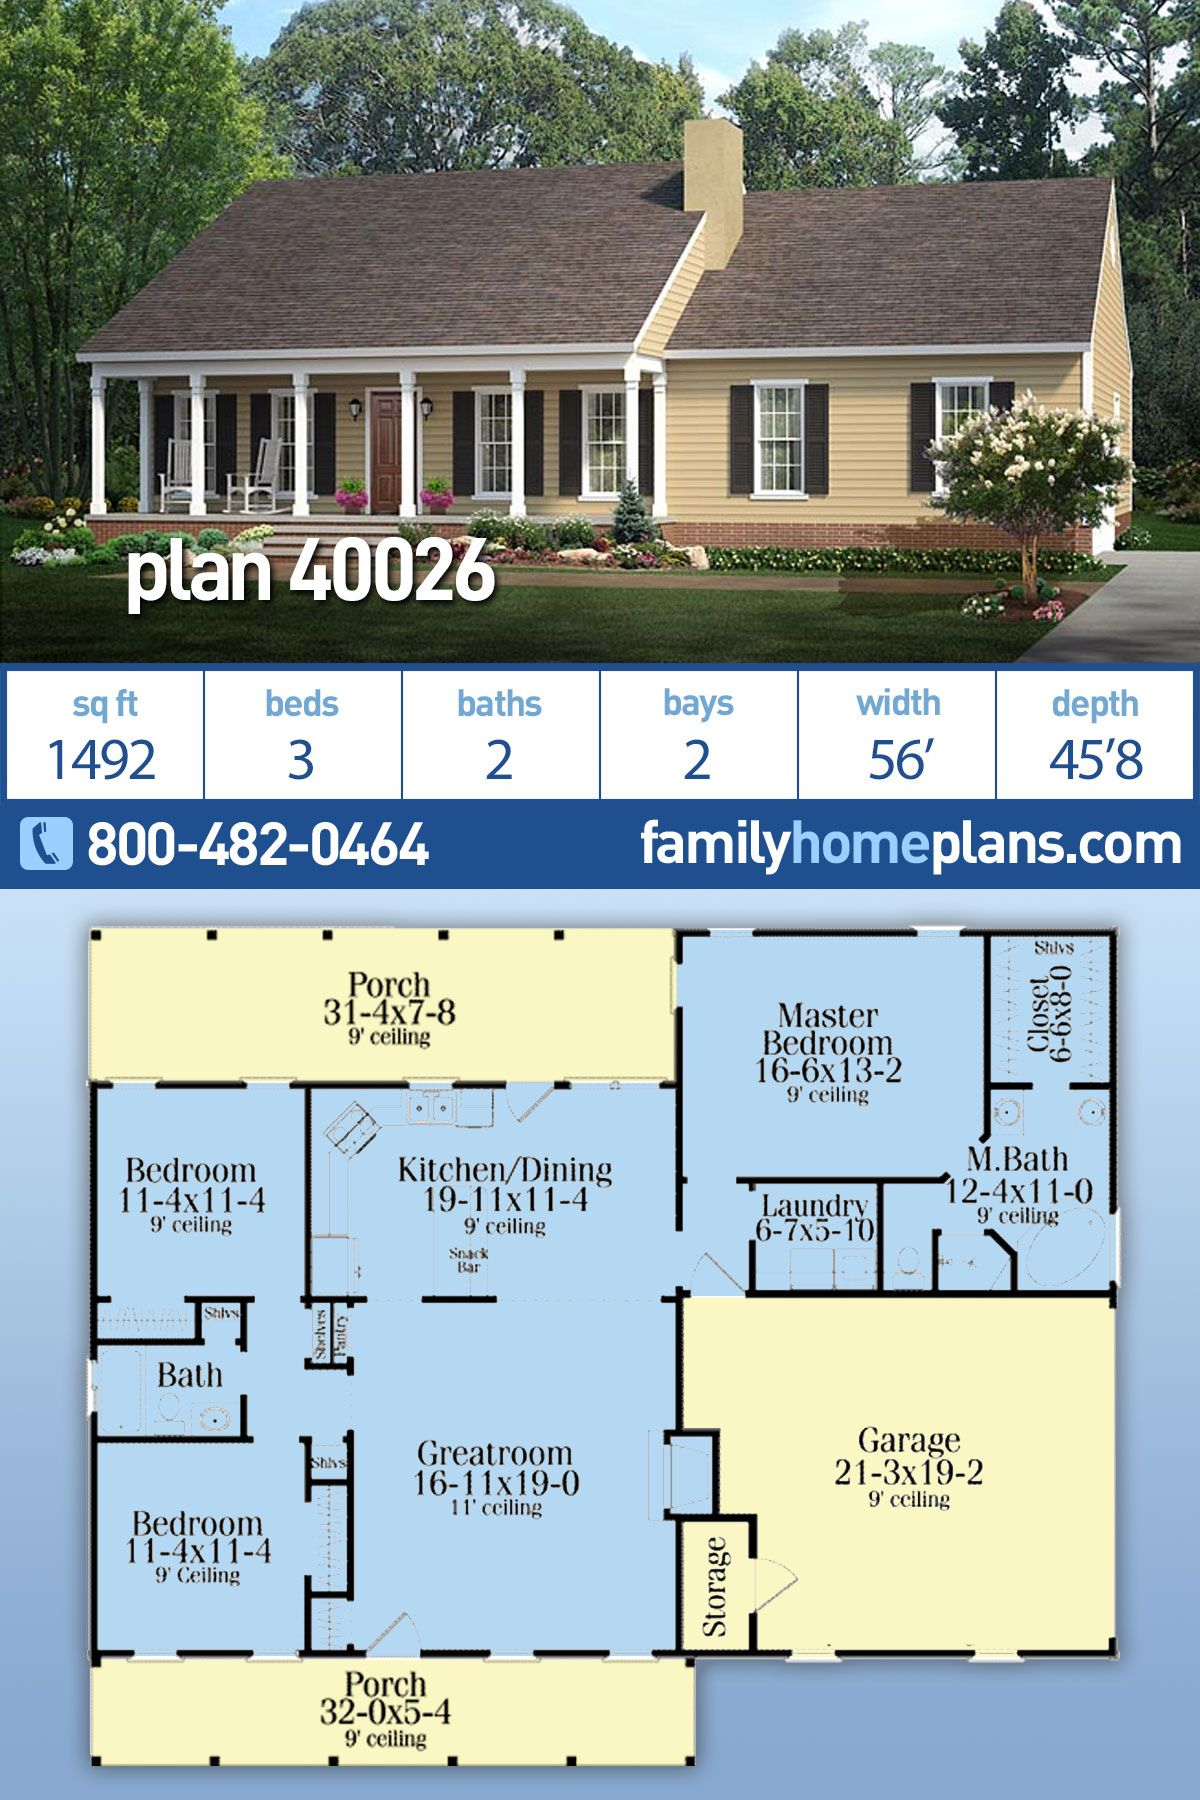 Ranch Style House Plan 40026 With 3 Bed 2 Bath 2 Car Garage Ranch House Designs Simple Ranch House Plans Family House Plans